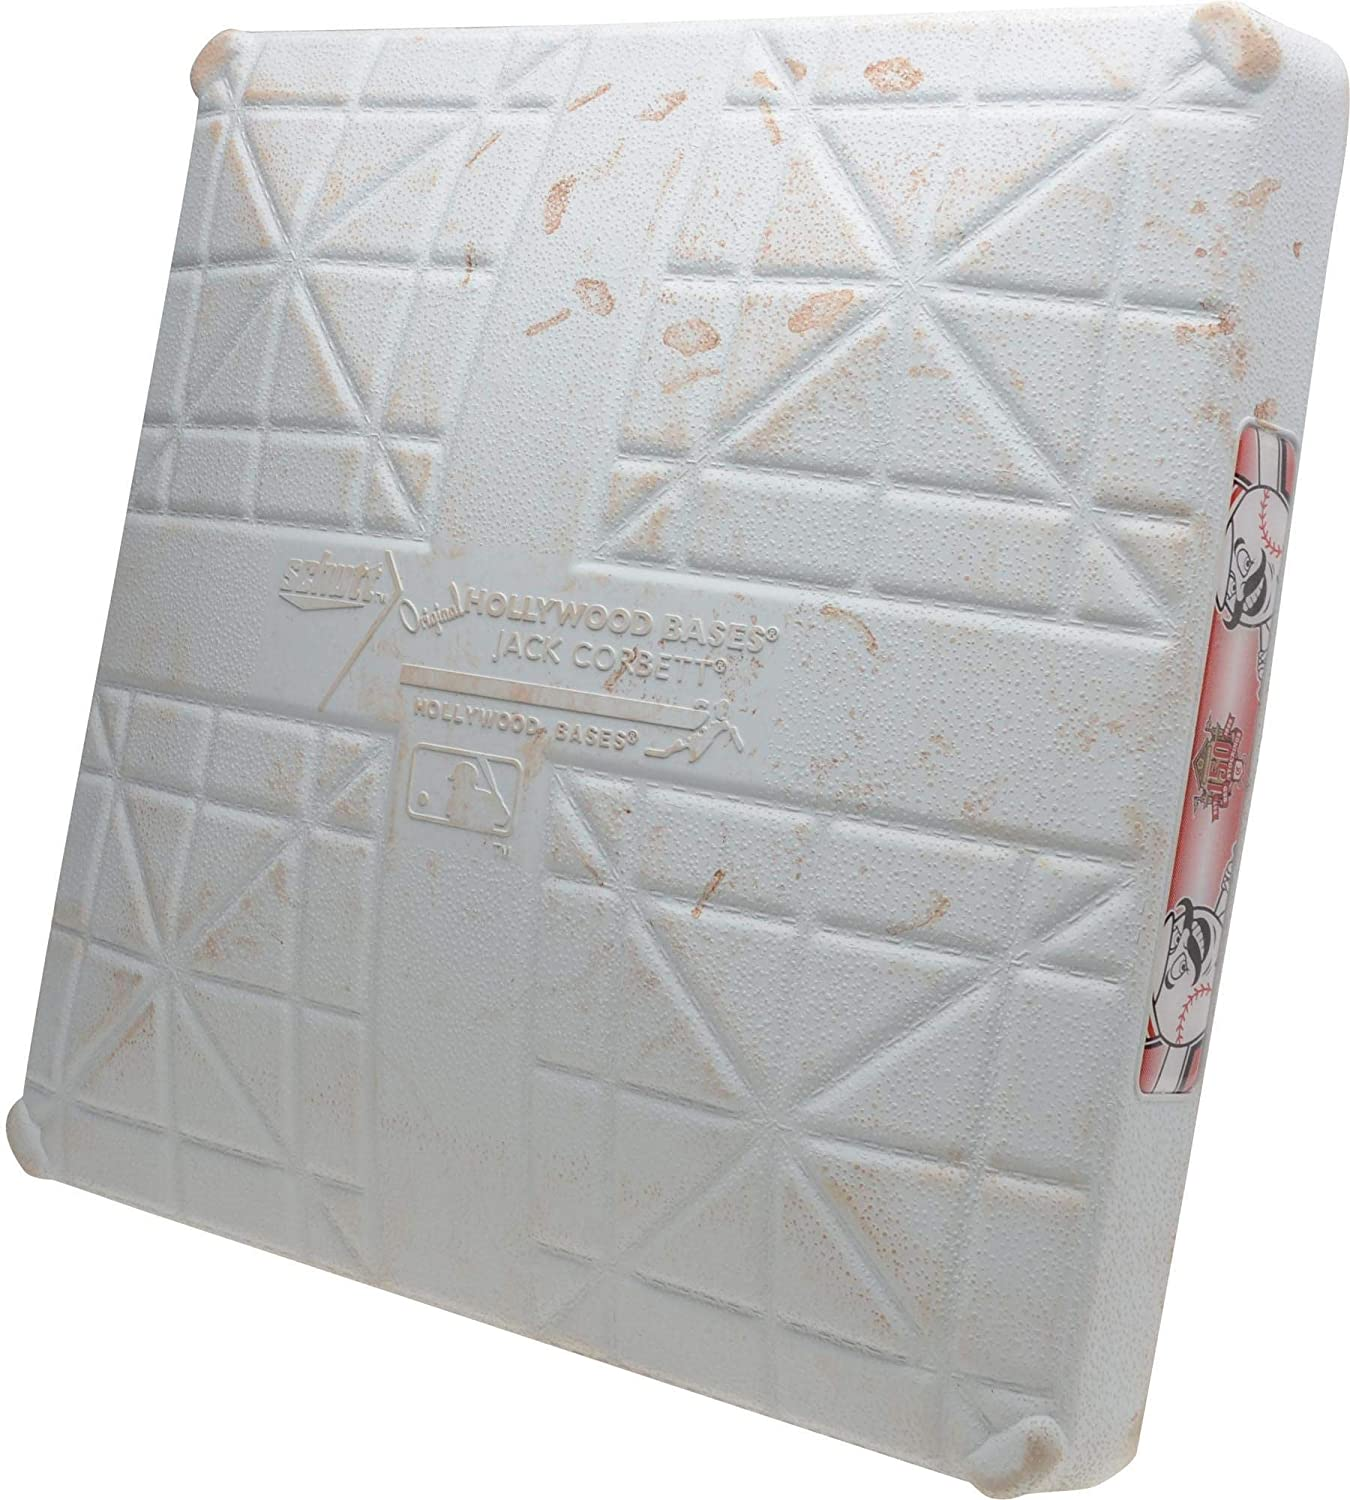 Cincinnati Reds Game-Used 3rd Base vs. Miami Marlins on April 10, 2019 - Innings 4-6 - Fanatics Authentic Certified